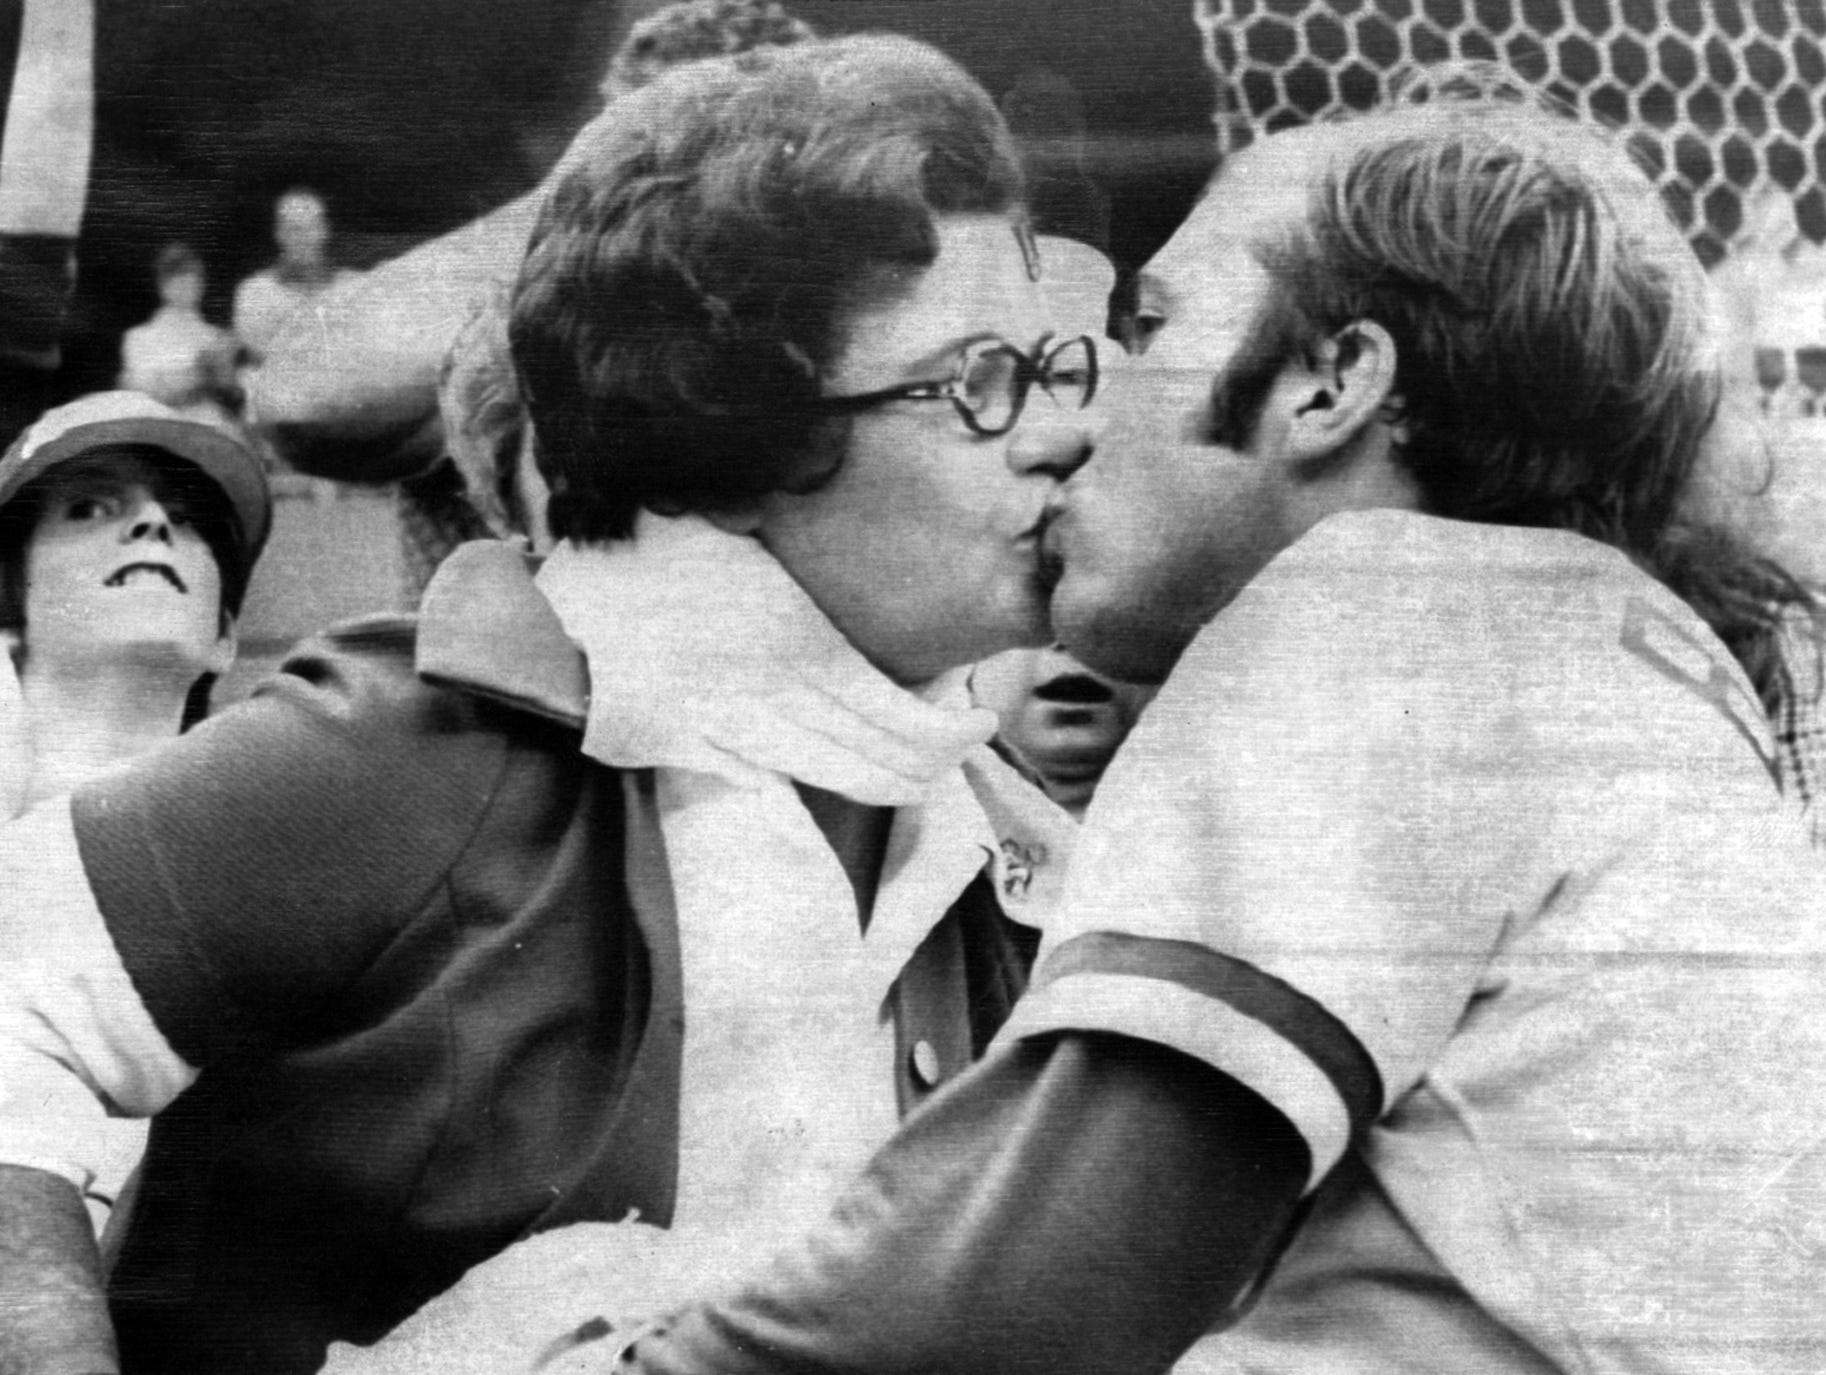 OCTOBER 6, 1973: Johnny Bench gets a winner's reward - a kiss from his mother - Mrs. Katy Bench, after he homered in ninth inning to give the Cincinnati Reds a 2-1 win over the New York Mets in first game of the national league playoffs here at Cincinnati Saturday. AP Photo scanned August 6, 2013